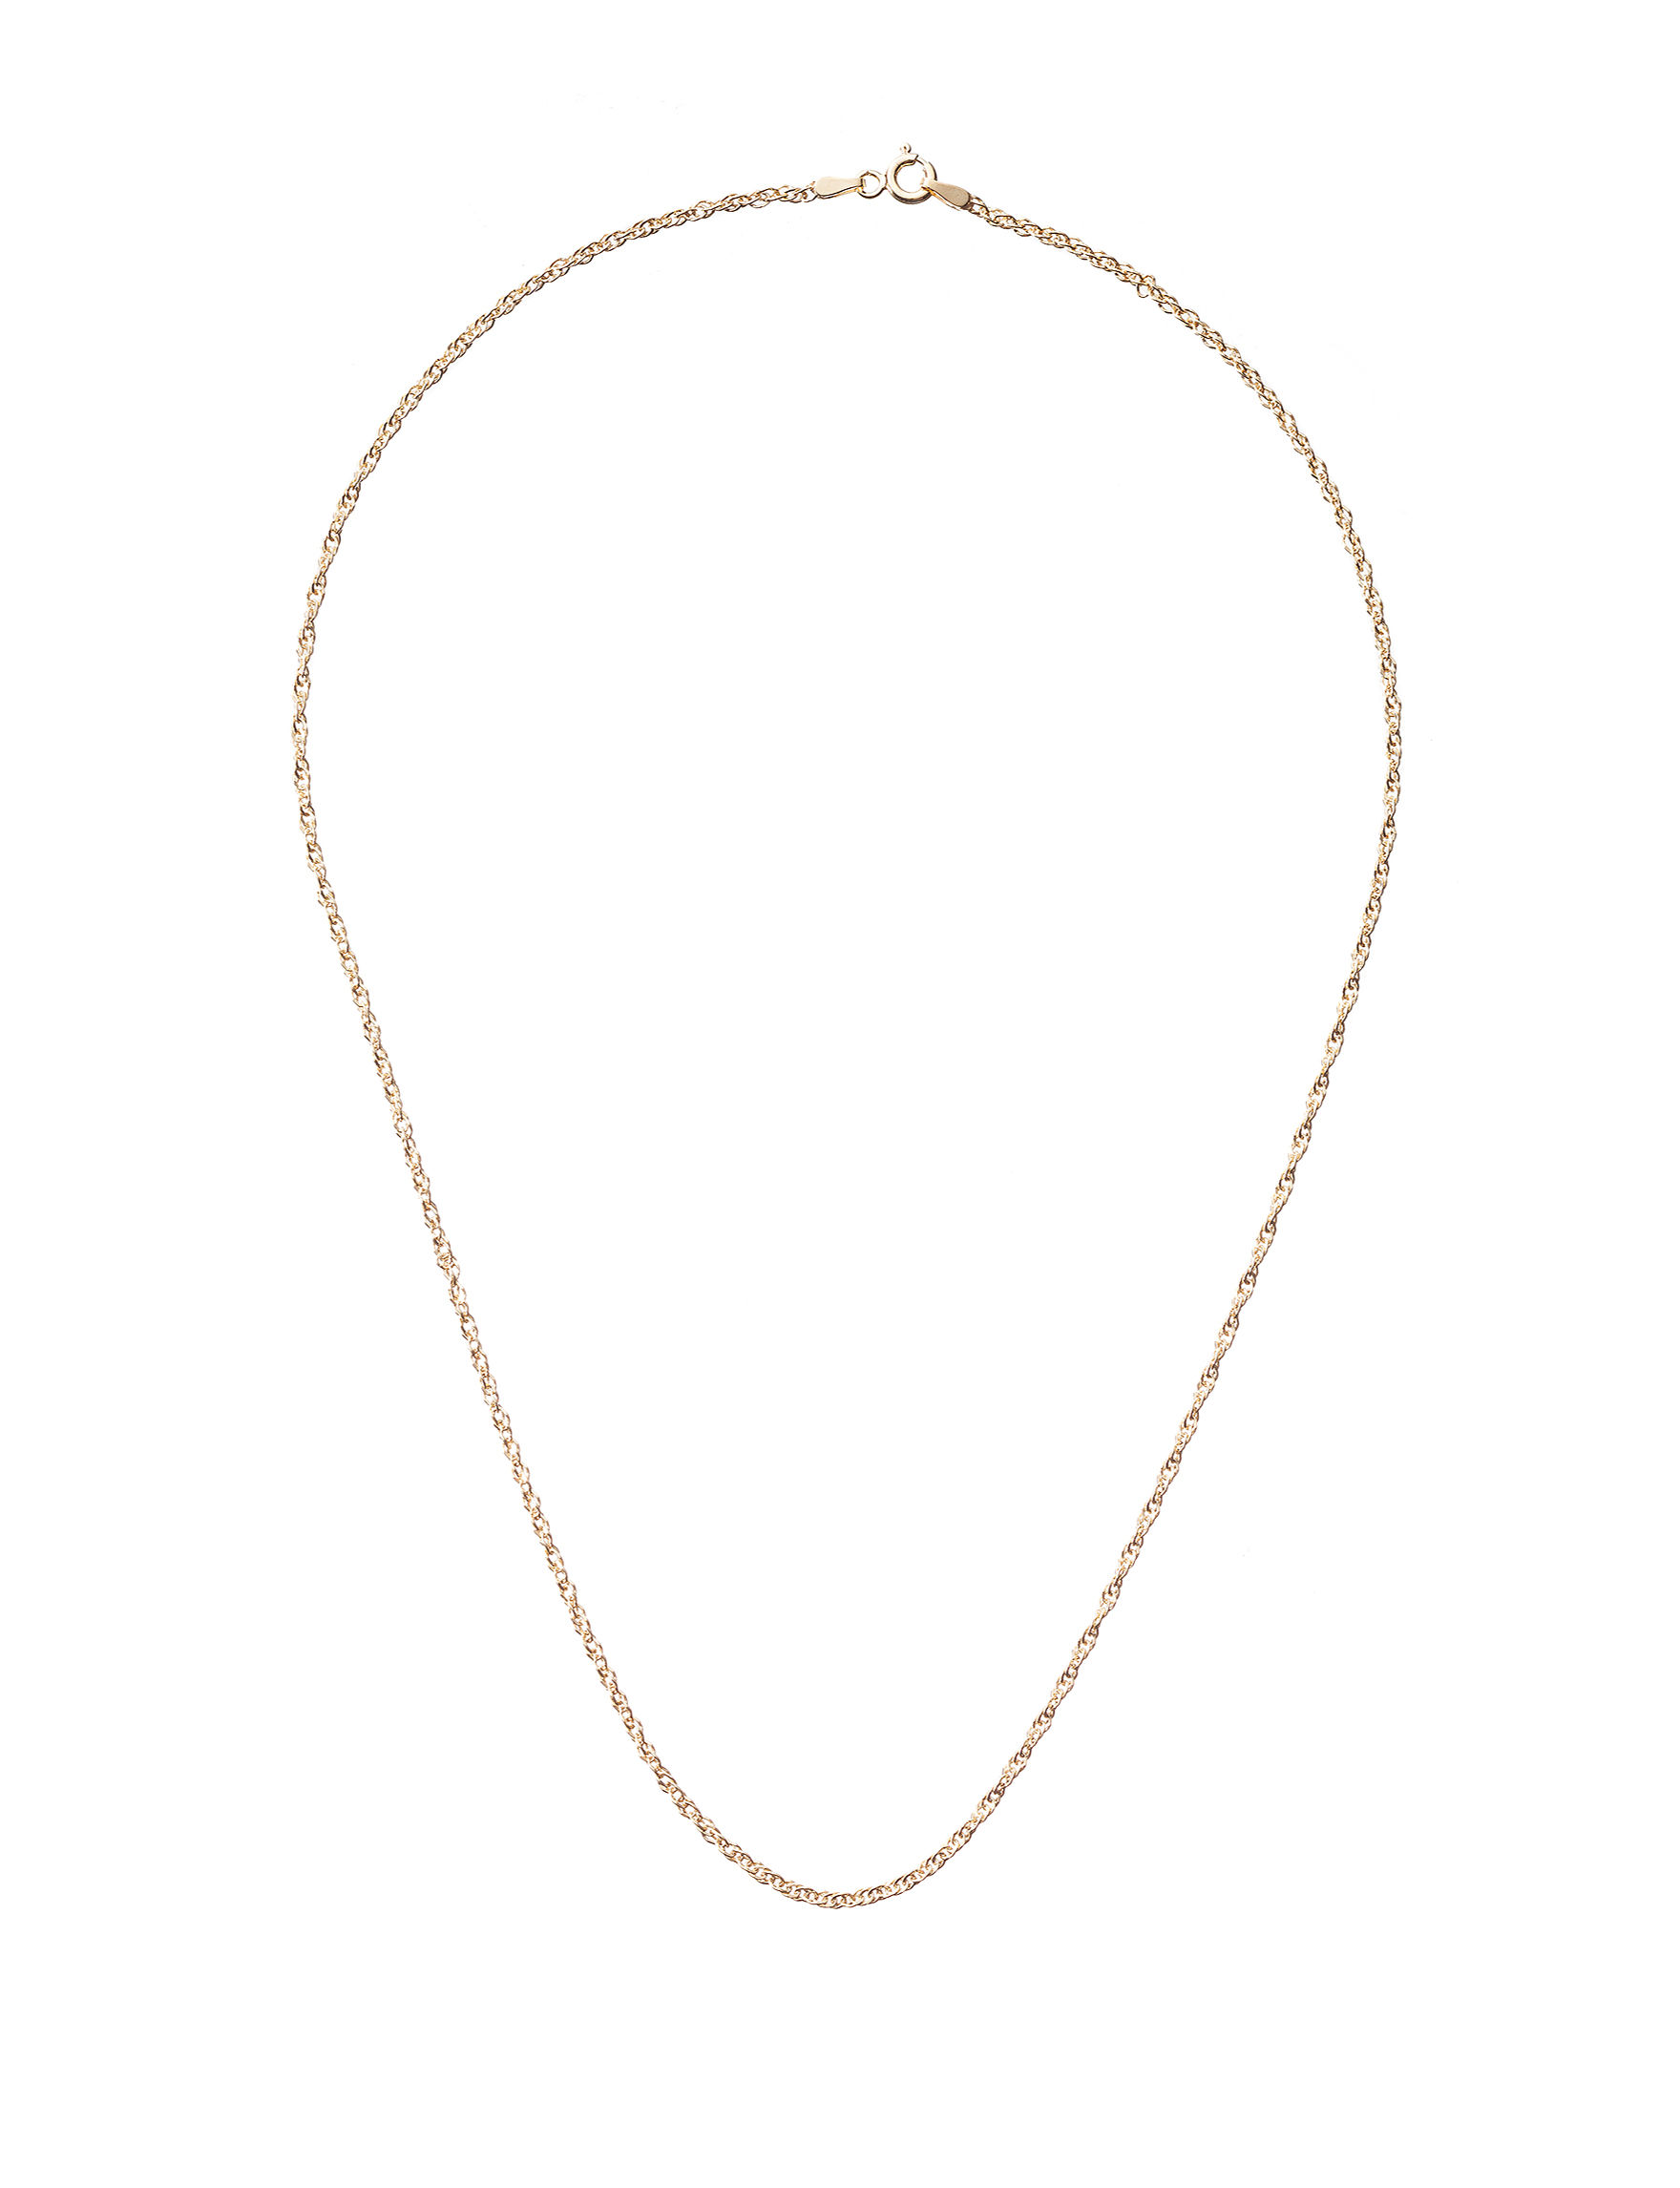 Danecraft Gold Necklaces & Pendants Fine Jewelry